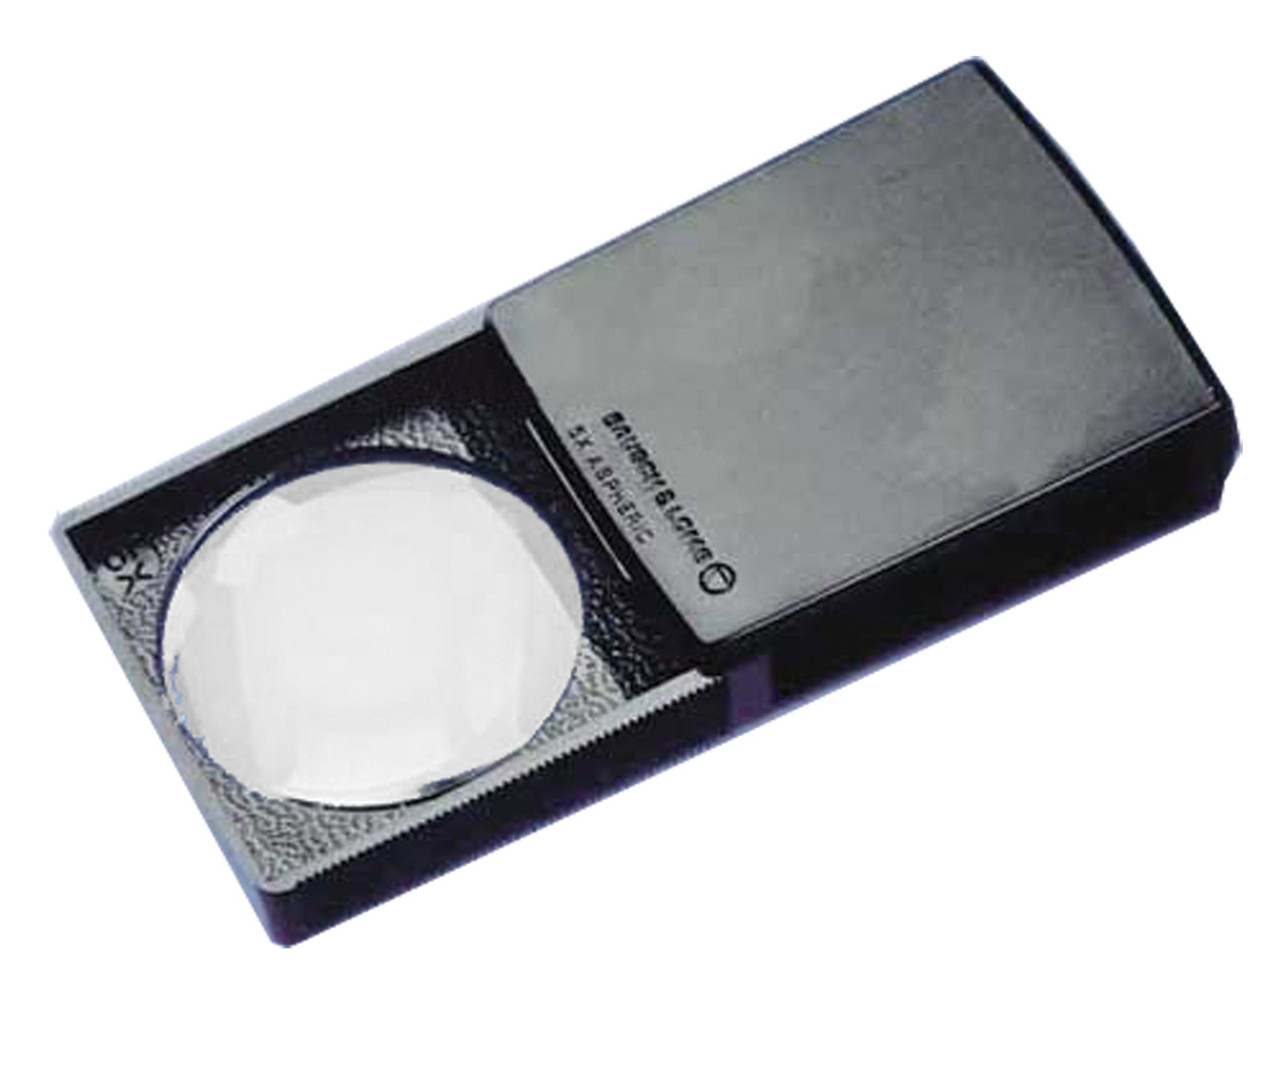 5X Pocket Packette Magnifier by Bausch & Lomb